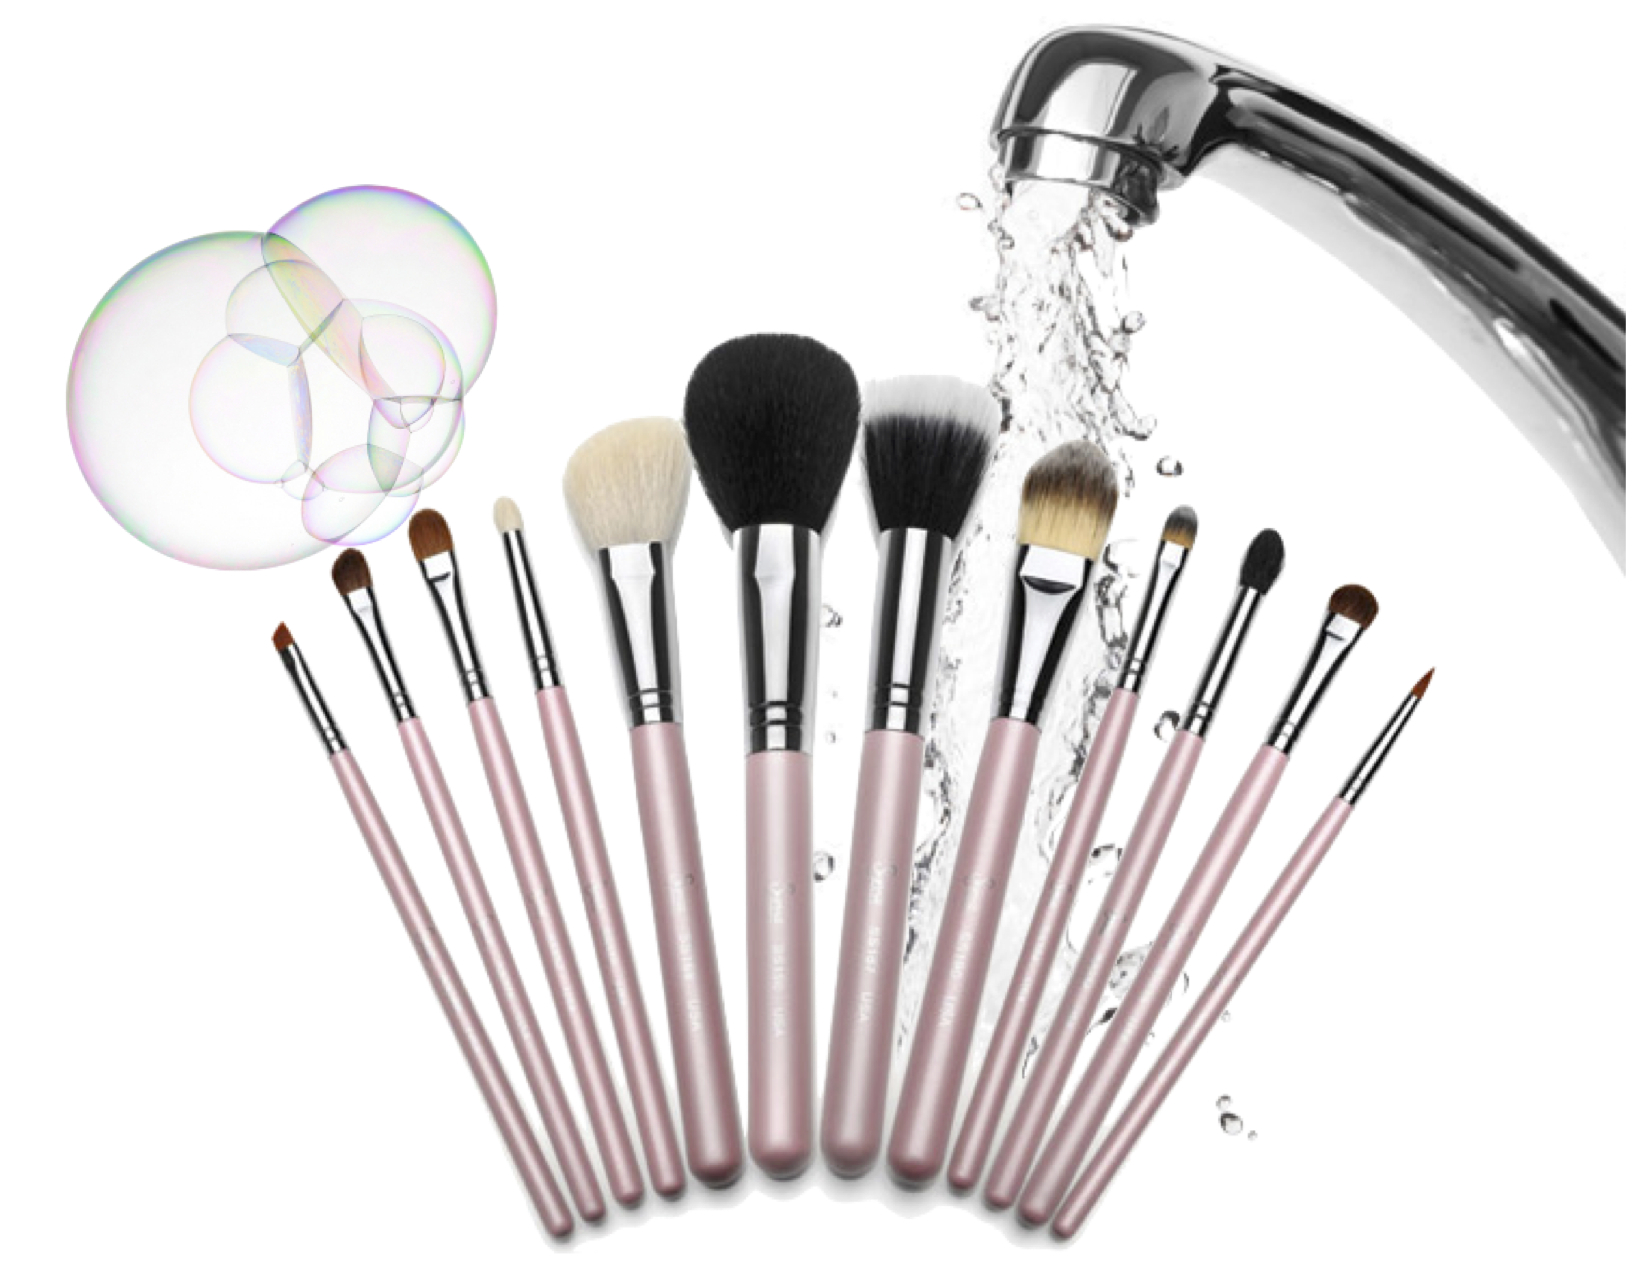 How To Deep Clean & Wash Makeup Brushes